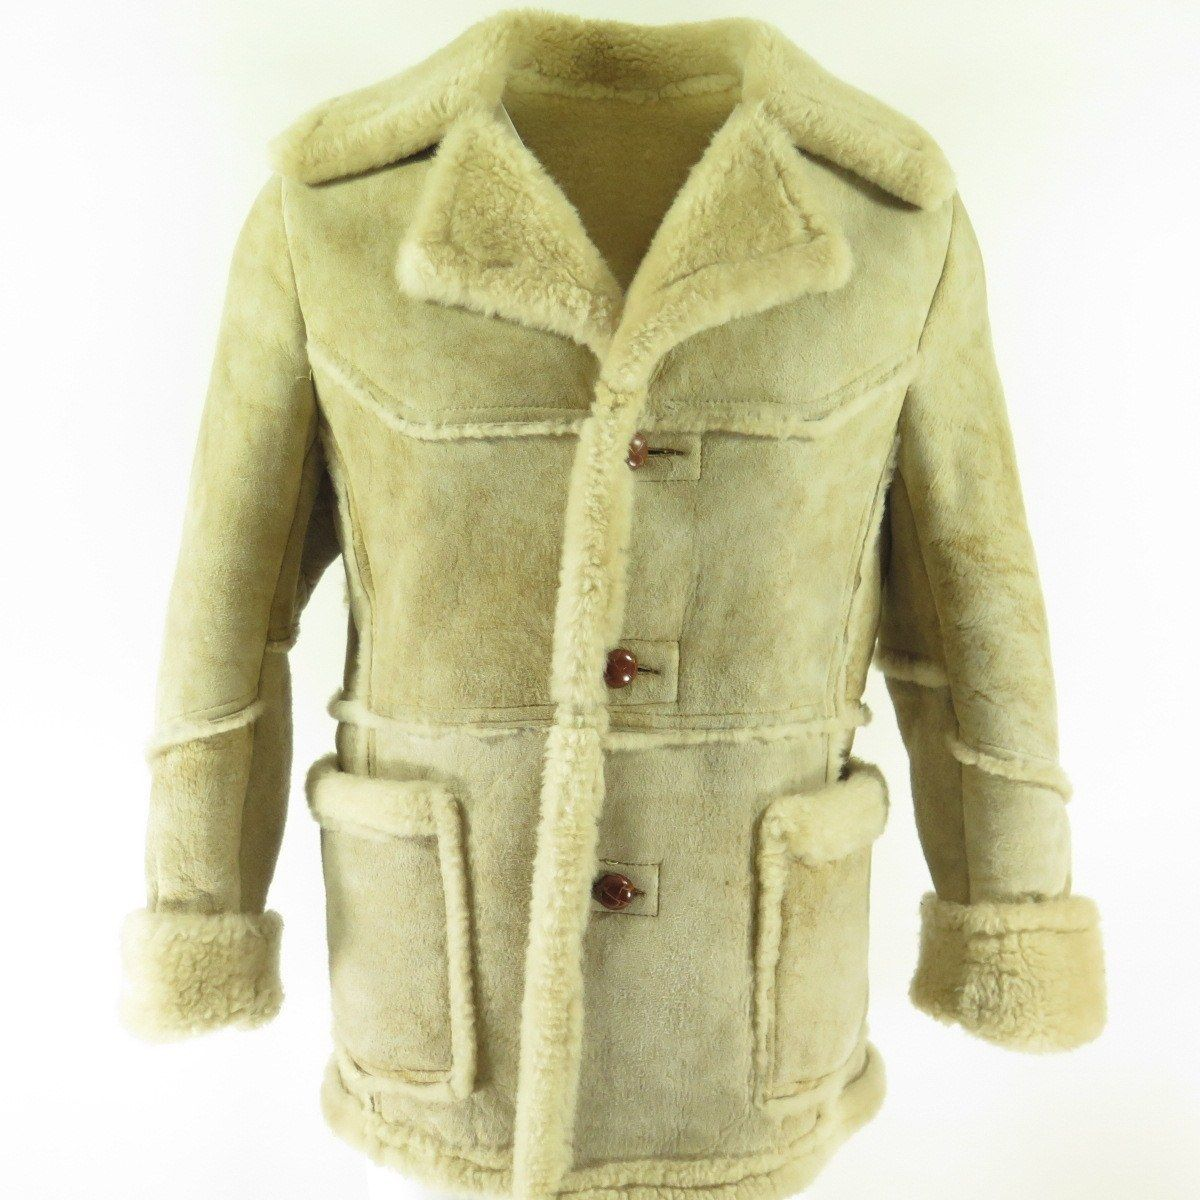 573afc797cd537 Vintage 80s Marlboro Man Shearling Coat Jacket Mens M Sheepskin Western |  eBay